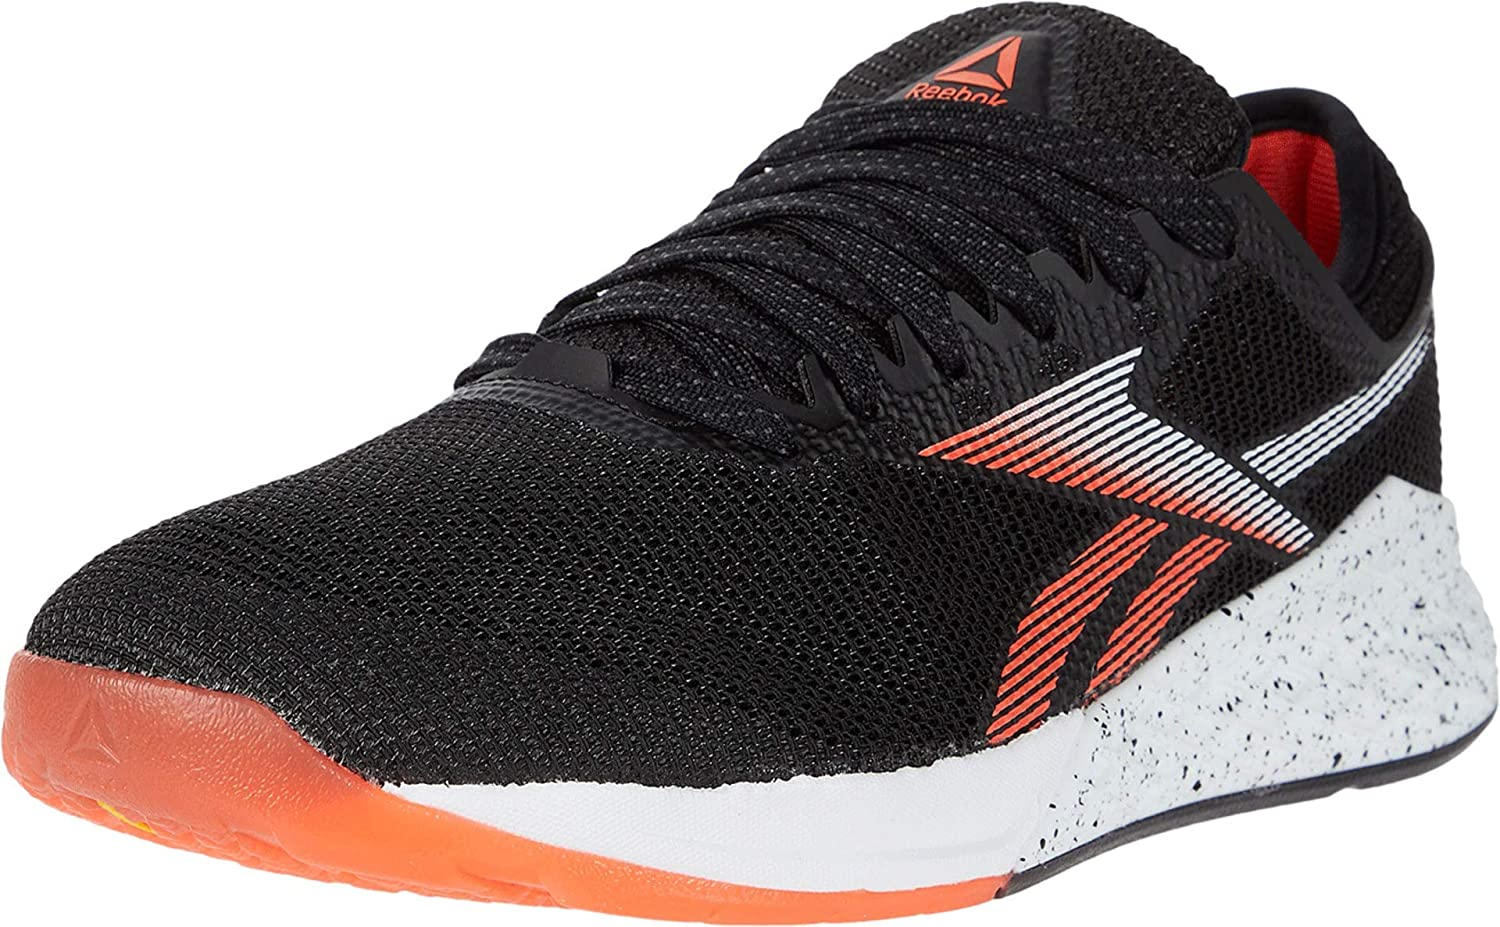 Special sale item Directly managed store Reebok Men's Nano Trainer Cross 9